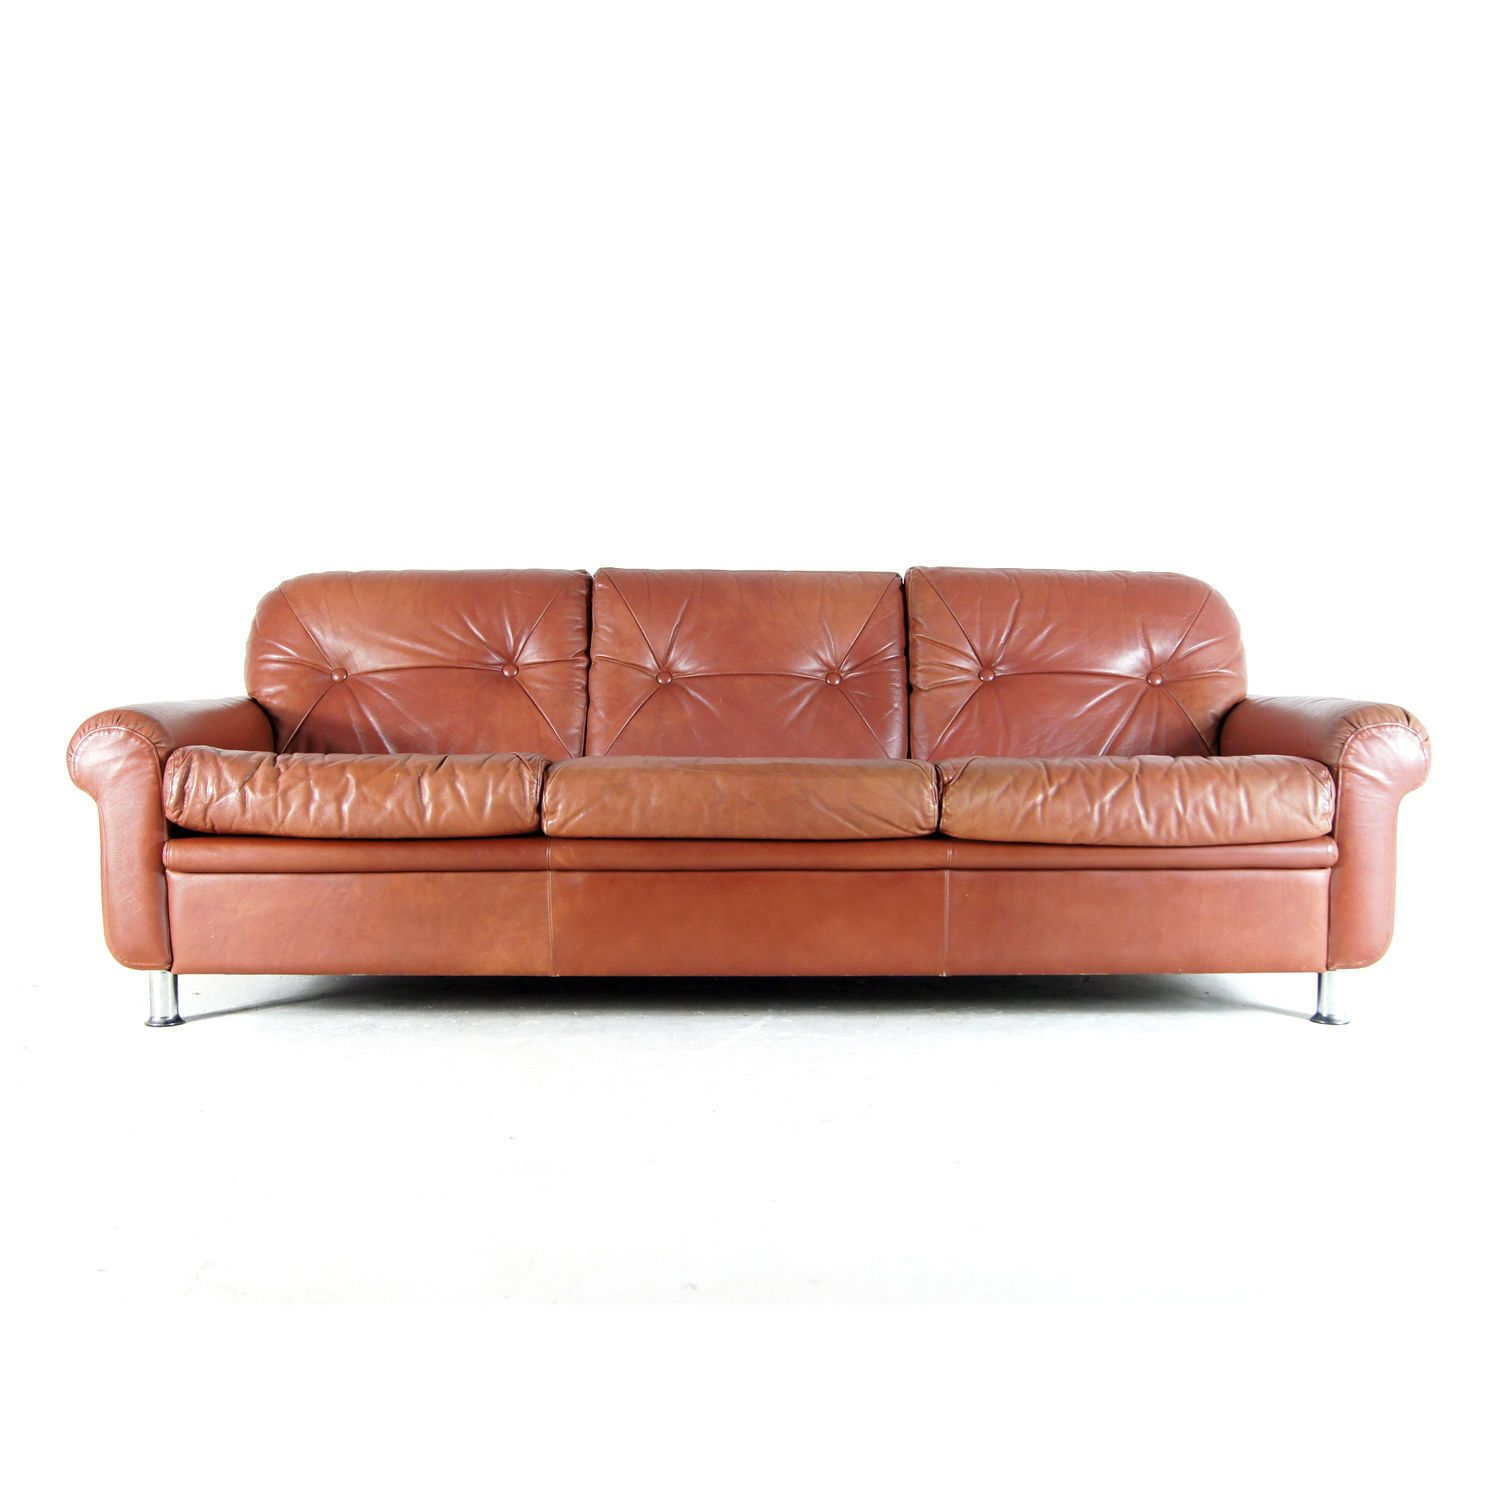 Retro Vintage Danish Chesterfield Style 3 Seat Seater